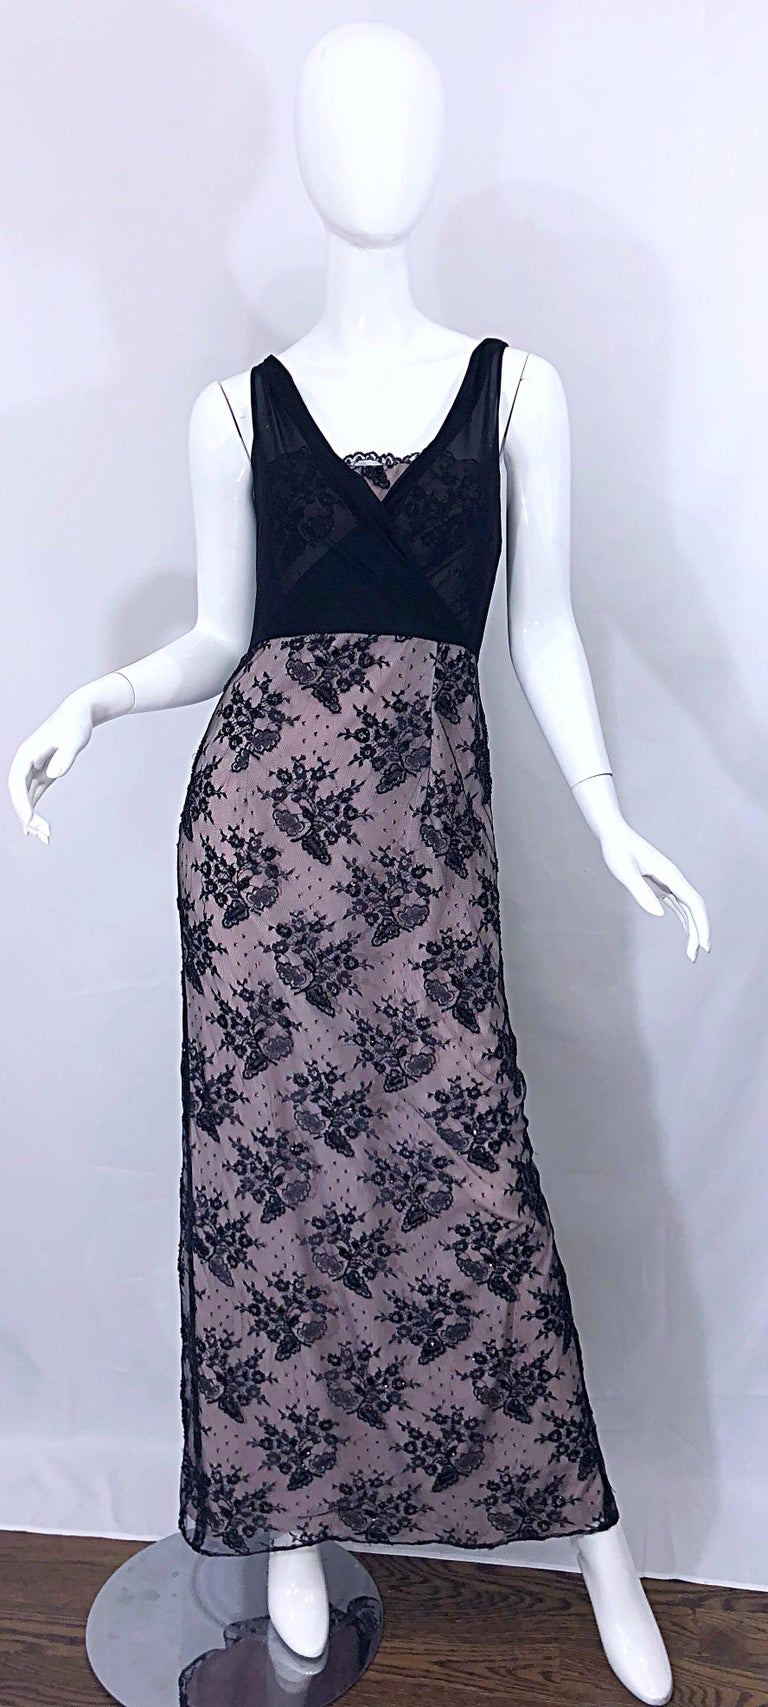 Gorgeous vintage BOB MACKIE black and pink beaded French lace evening gown! Features a light pink taffeta underlay. Black French lace covers the pink, and a semi sheer black chiffon bodice. Hidden zipper up the back with hook-and-eye closure.